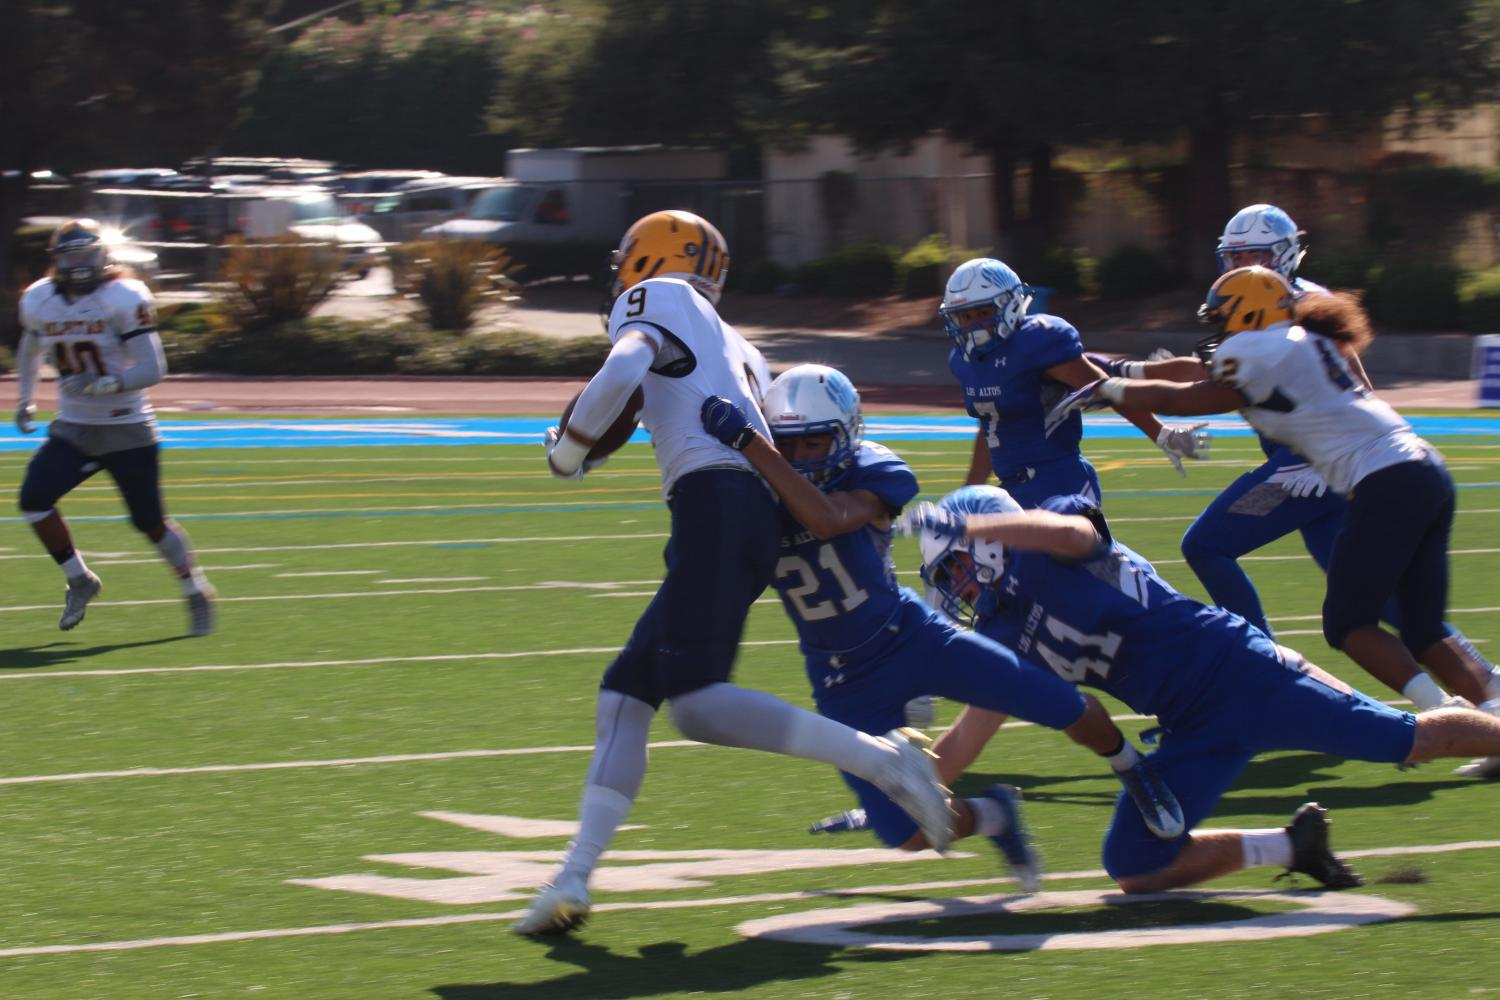 Cornerback junior Osvaldo Arellano tackles a Milpitas player.